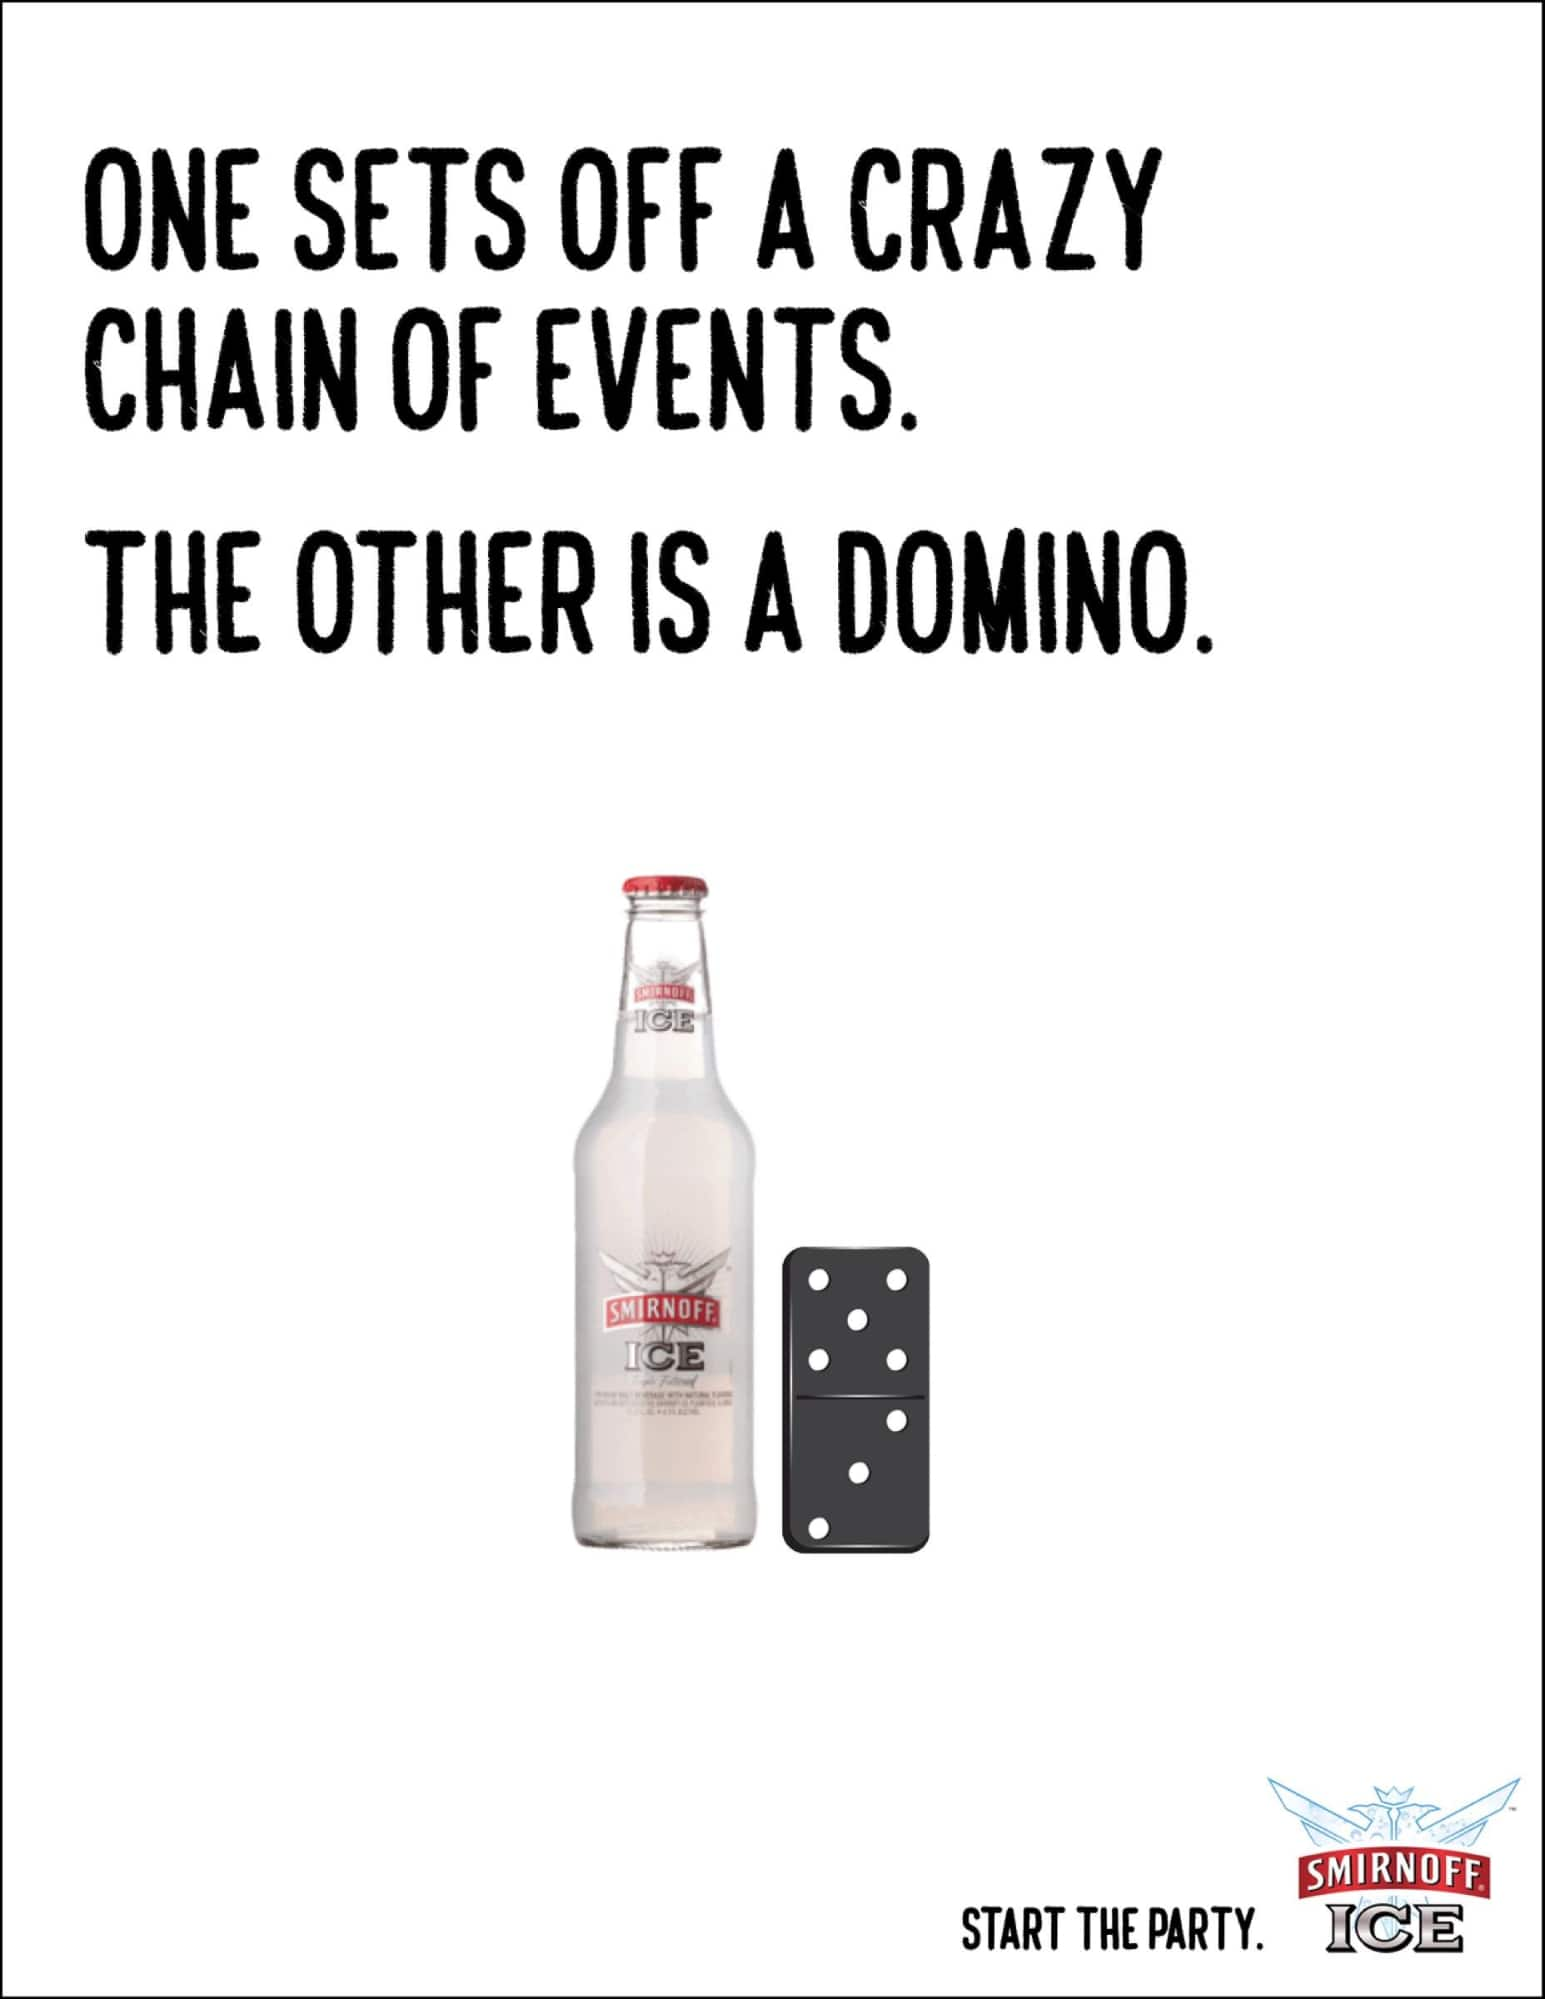 smirnoff domino advertisement example